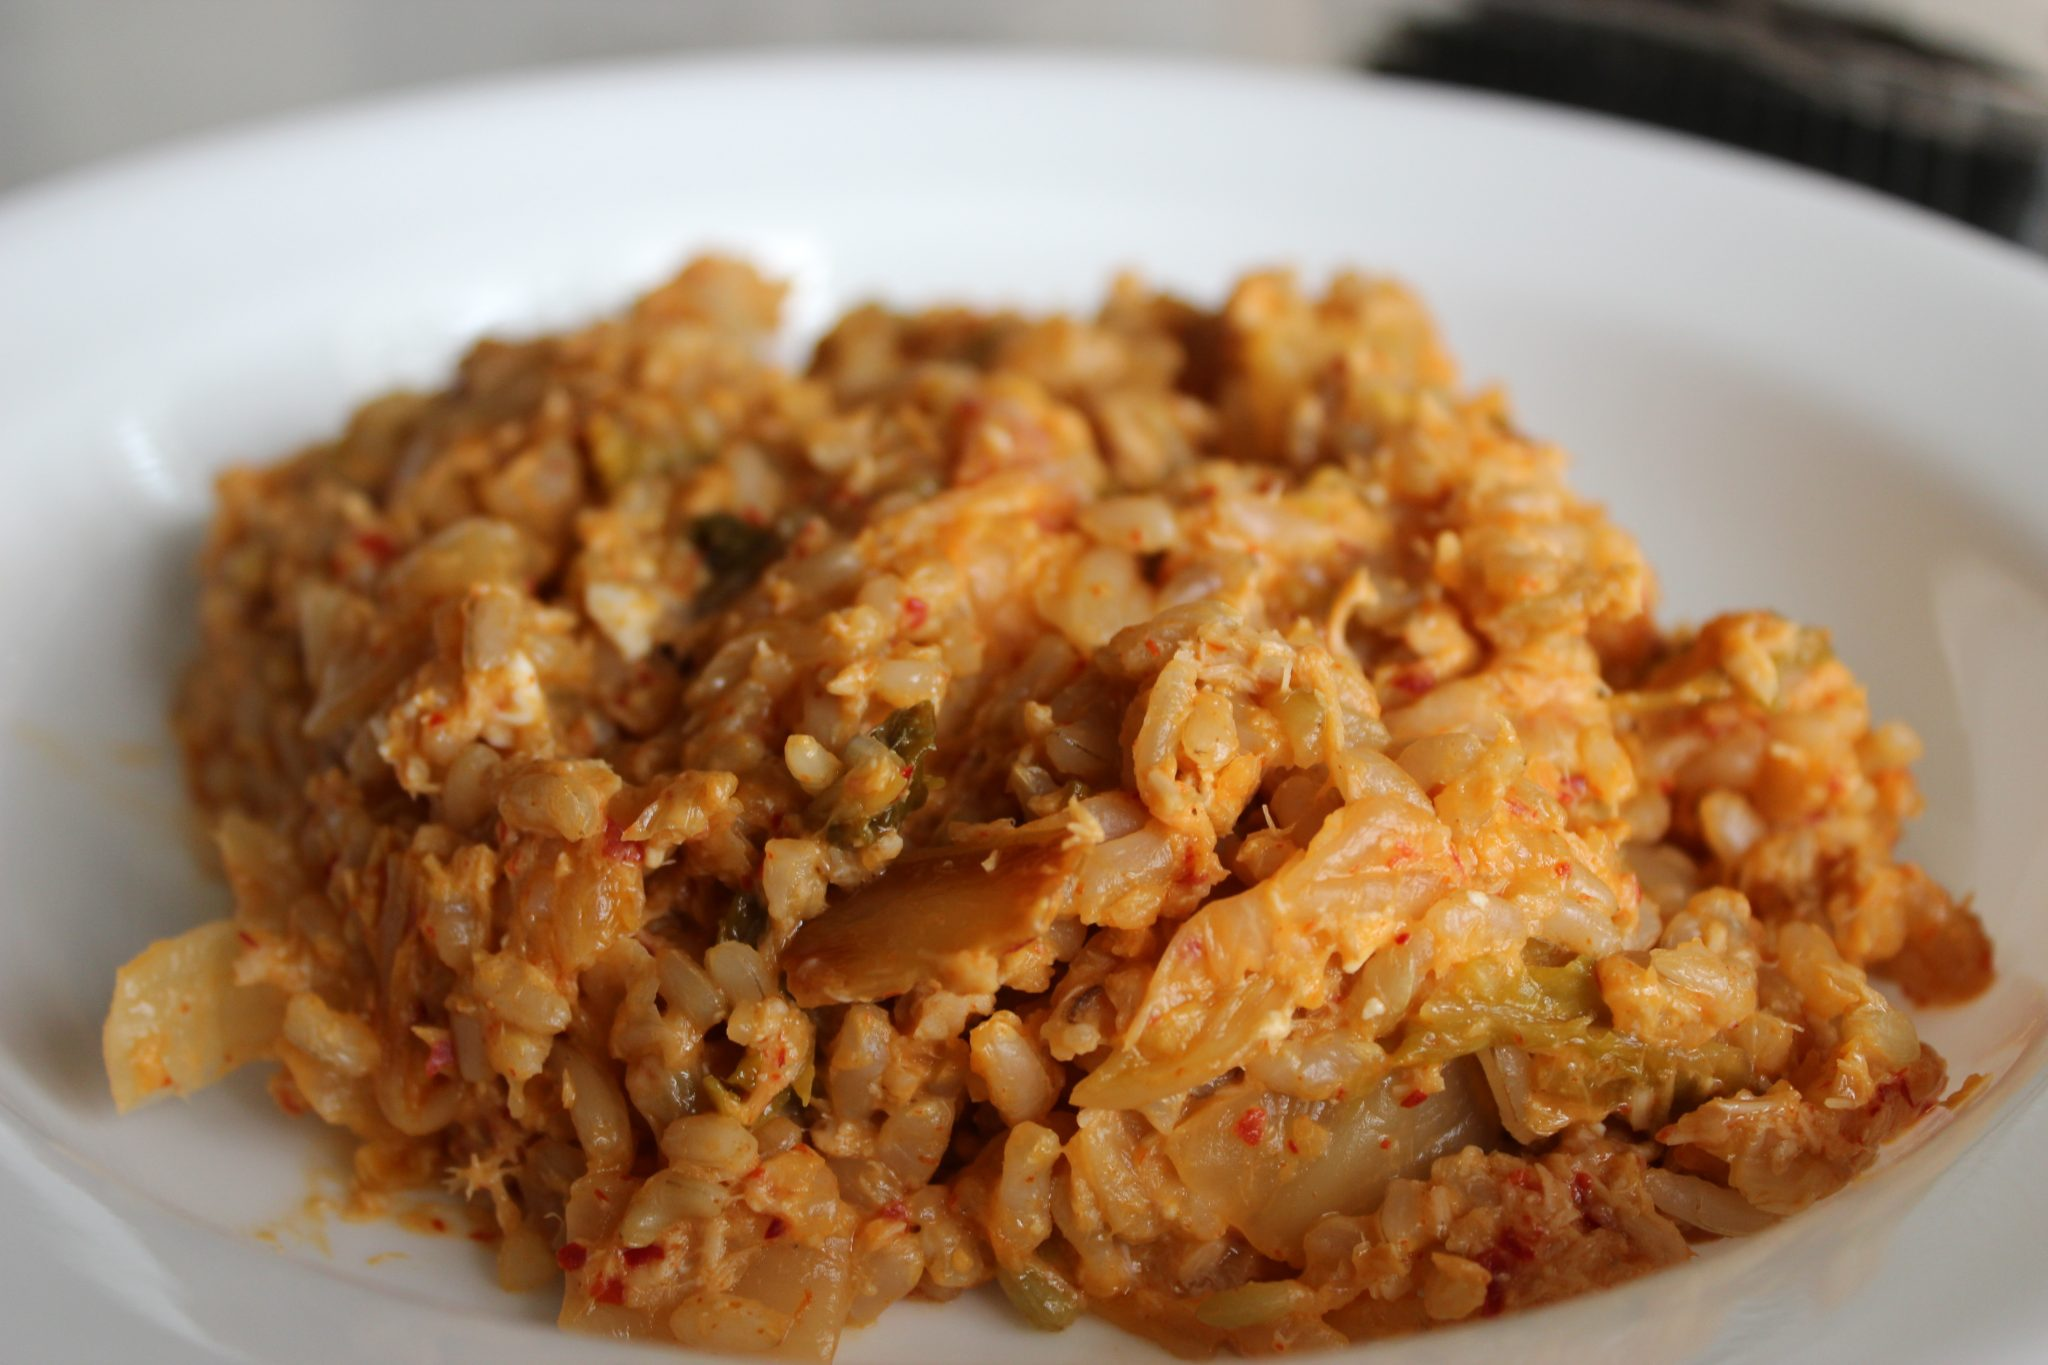 Plate of kimchi fried rice